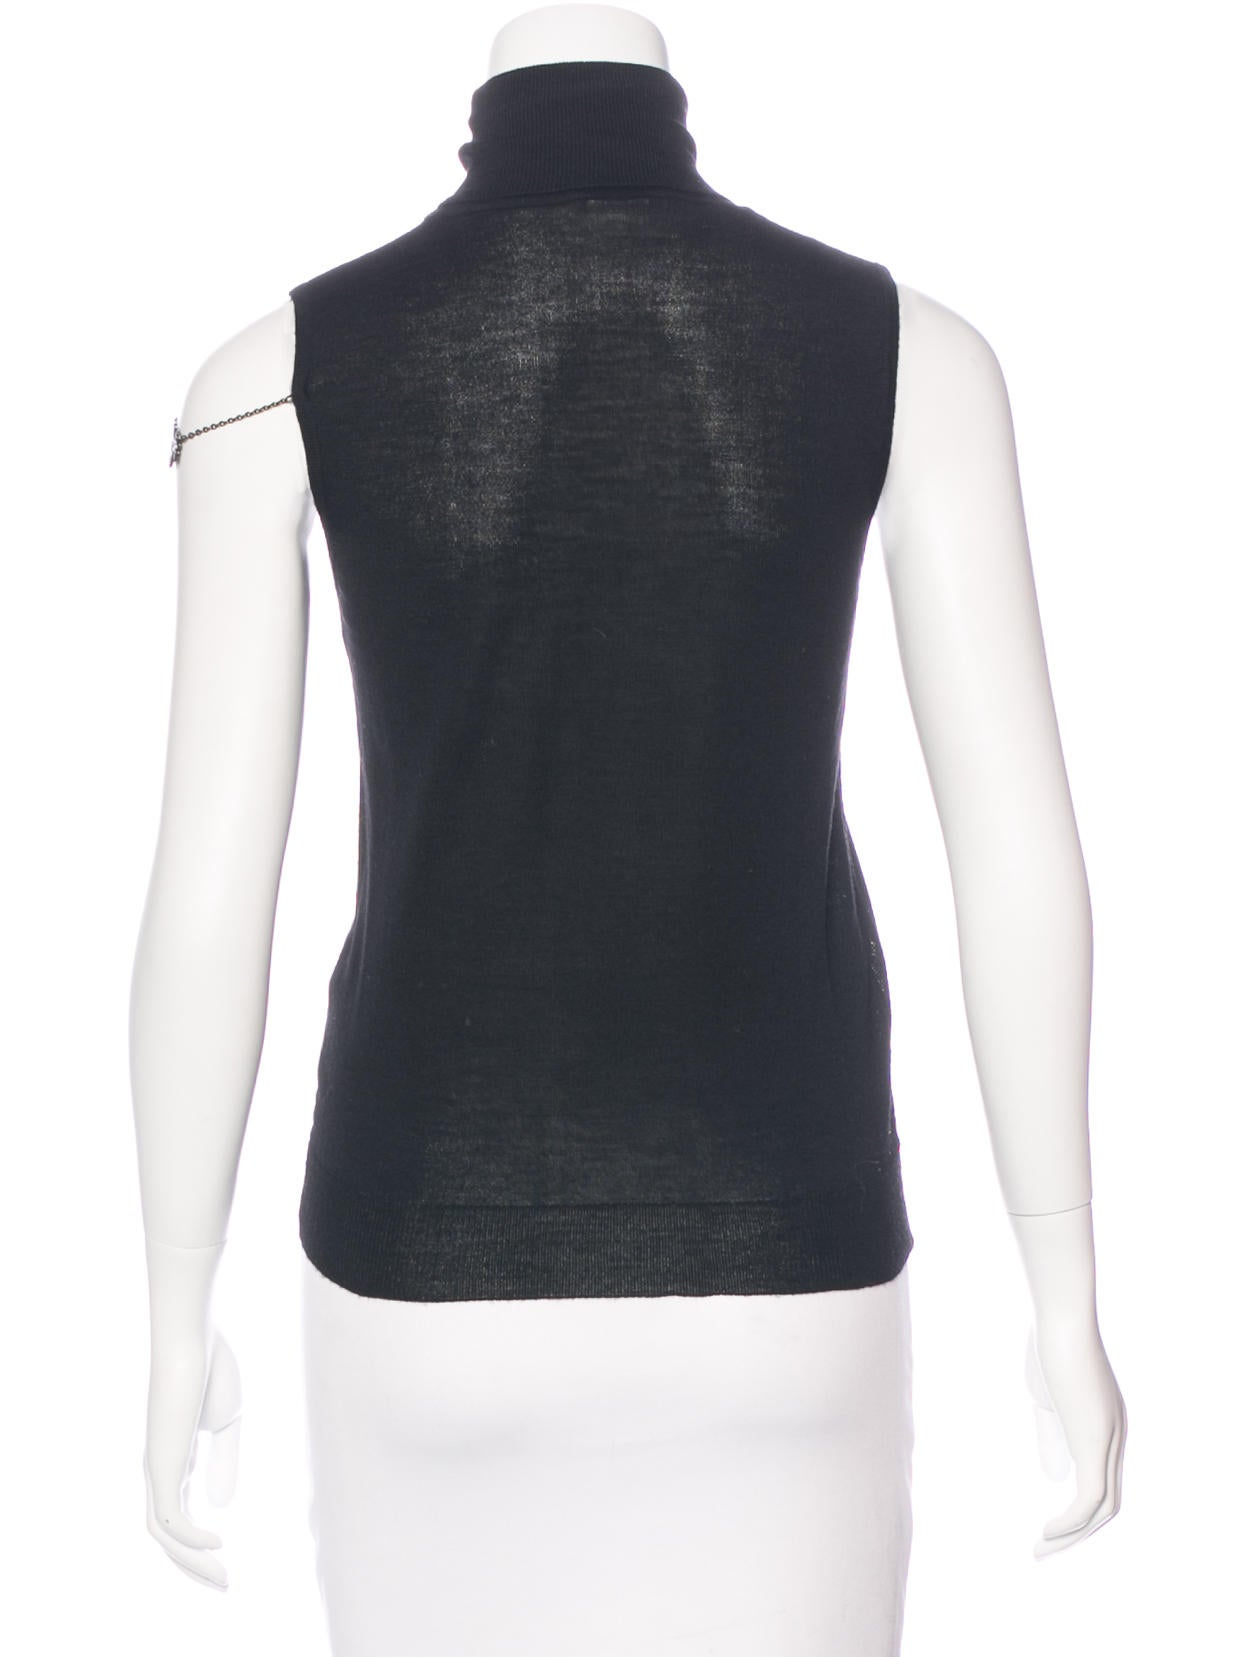 Chlo wool sleeveless top clothing chl55985 the realreal for Best wool shirt jackets